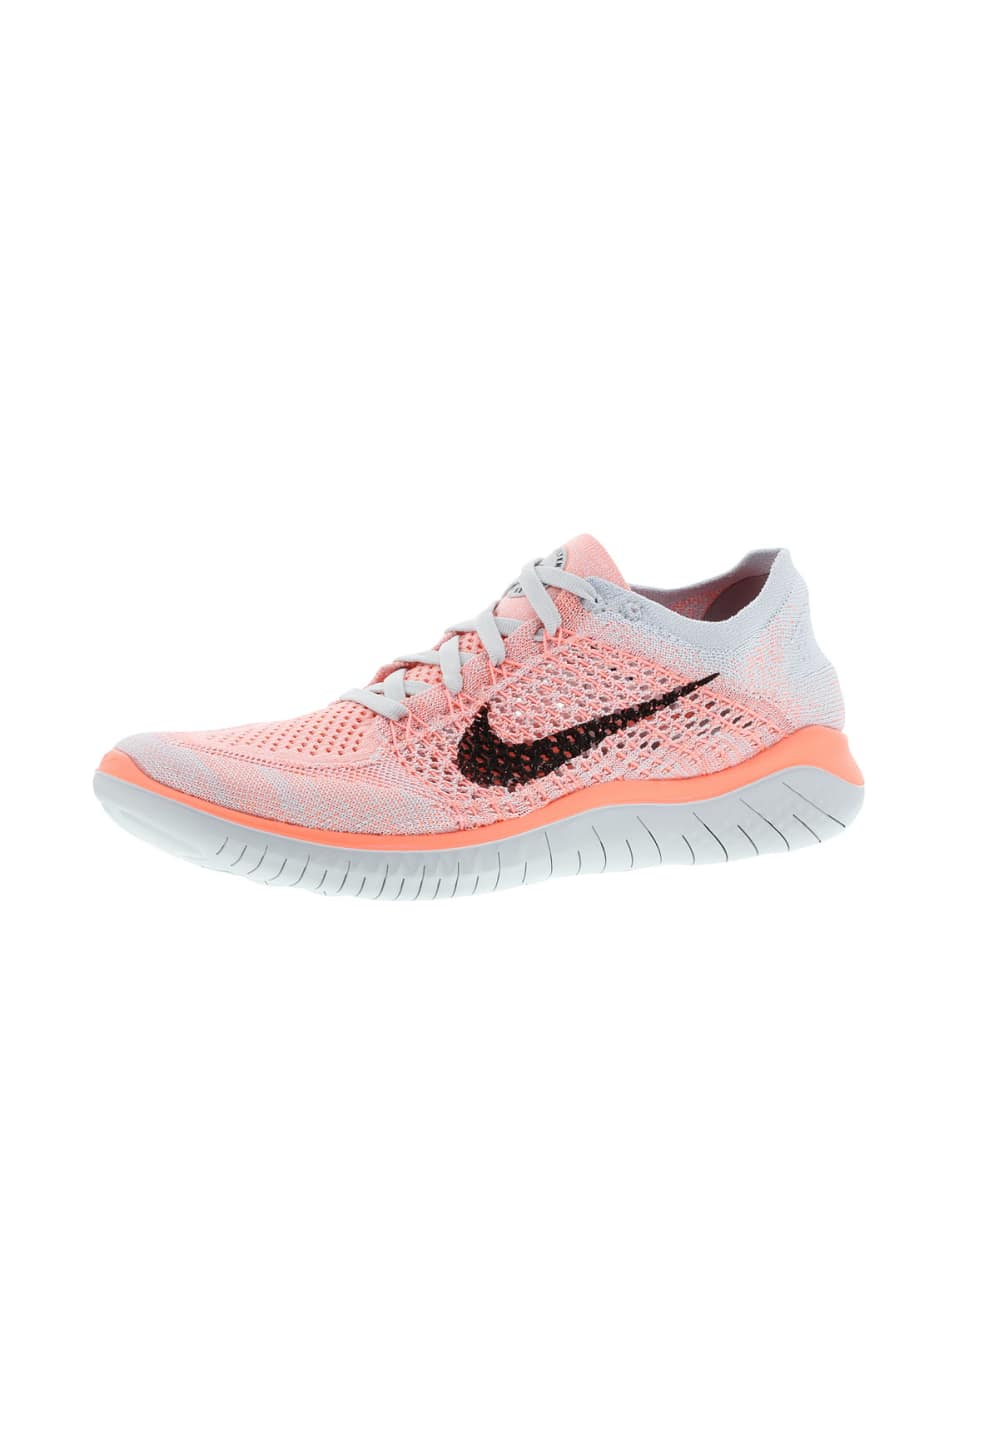 dd81f653616f06 Home · Shop · Nike Free RN Flyknit 2018 - Running shoes for Women - Pink.  Back to Overview. 1  2  3  4  5. Previous